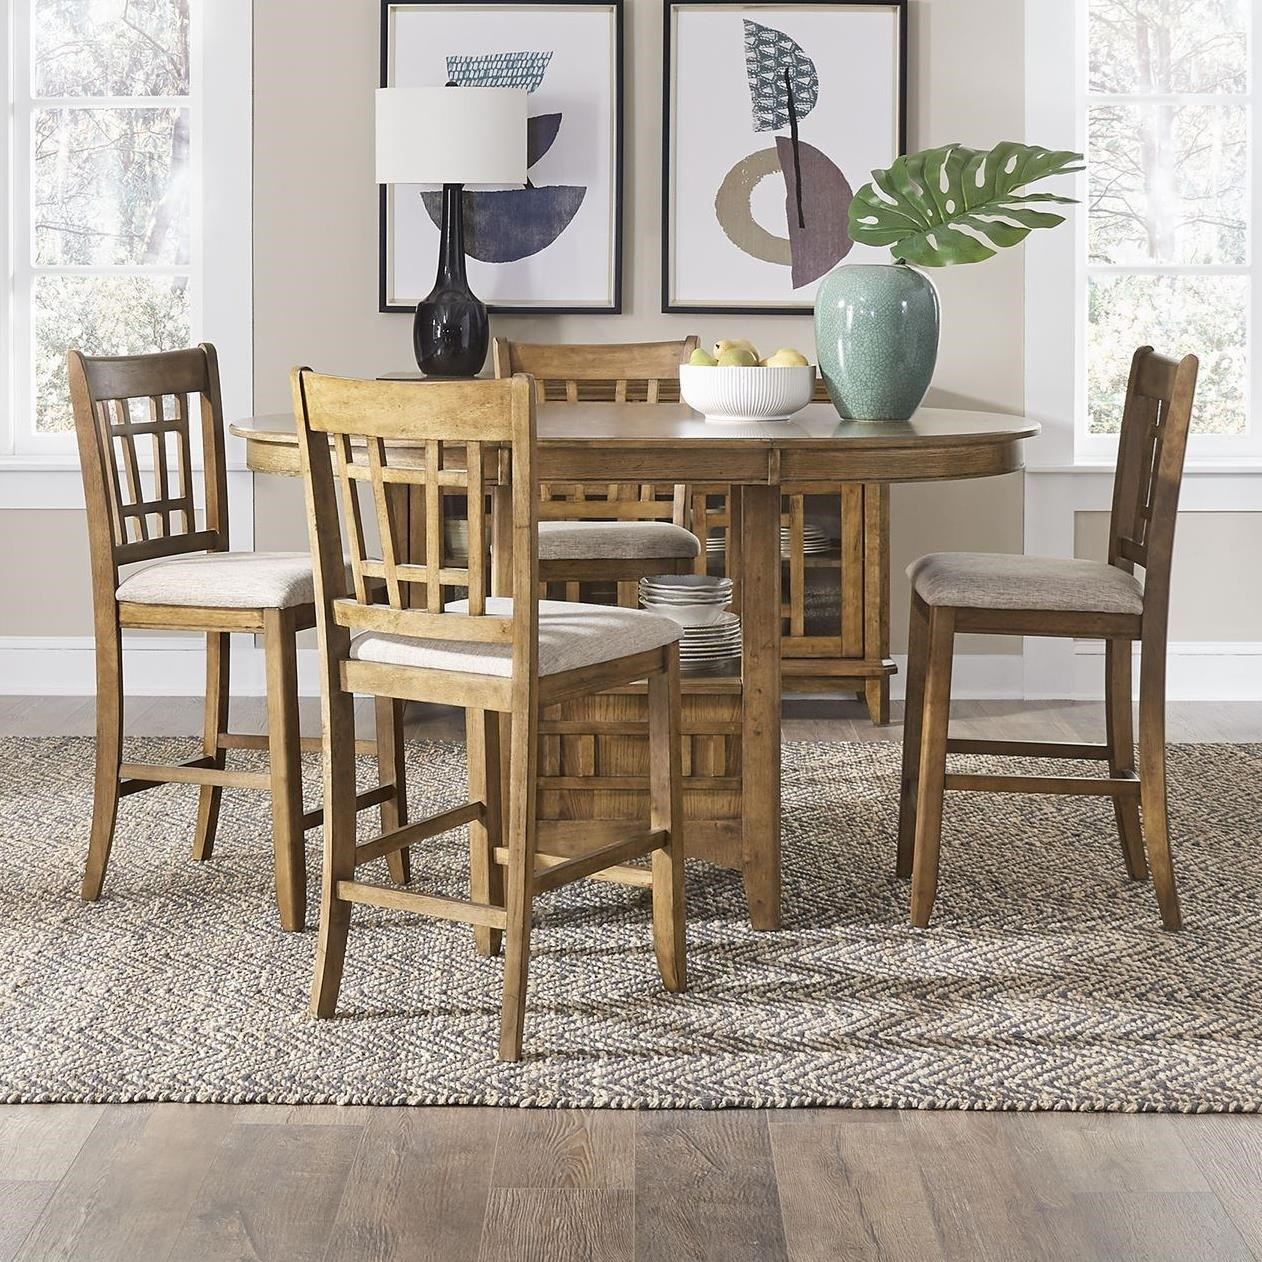 Santa Rosa II 5-Piece Counter Height Table Set by Libby at Walker's Furniture